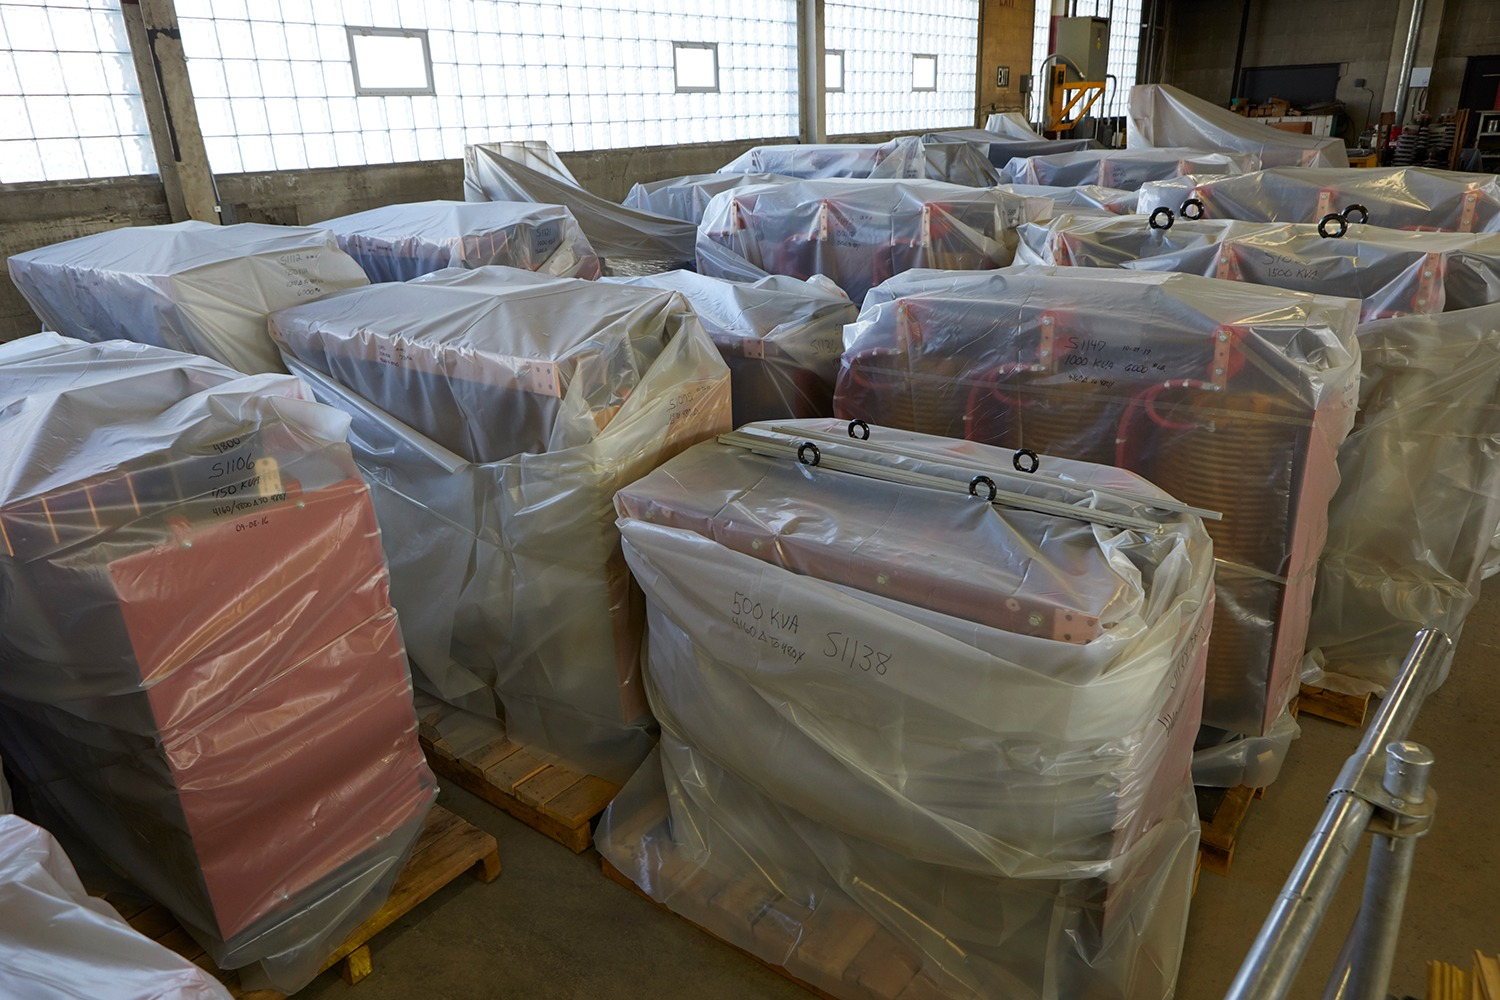 Dry Type Transformers ready to be shipped.